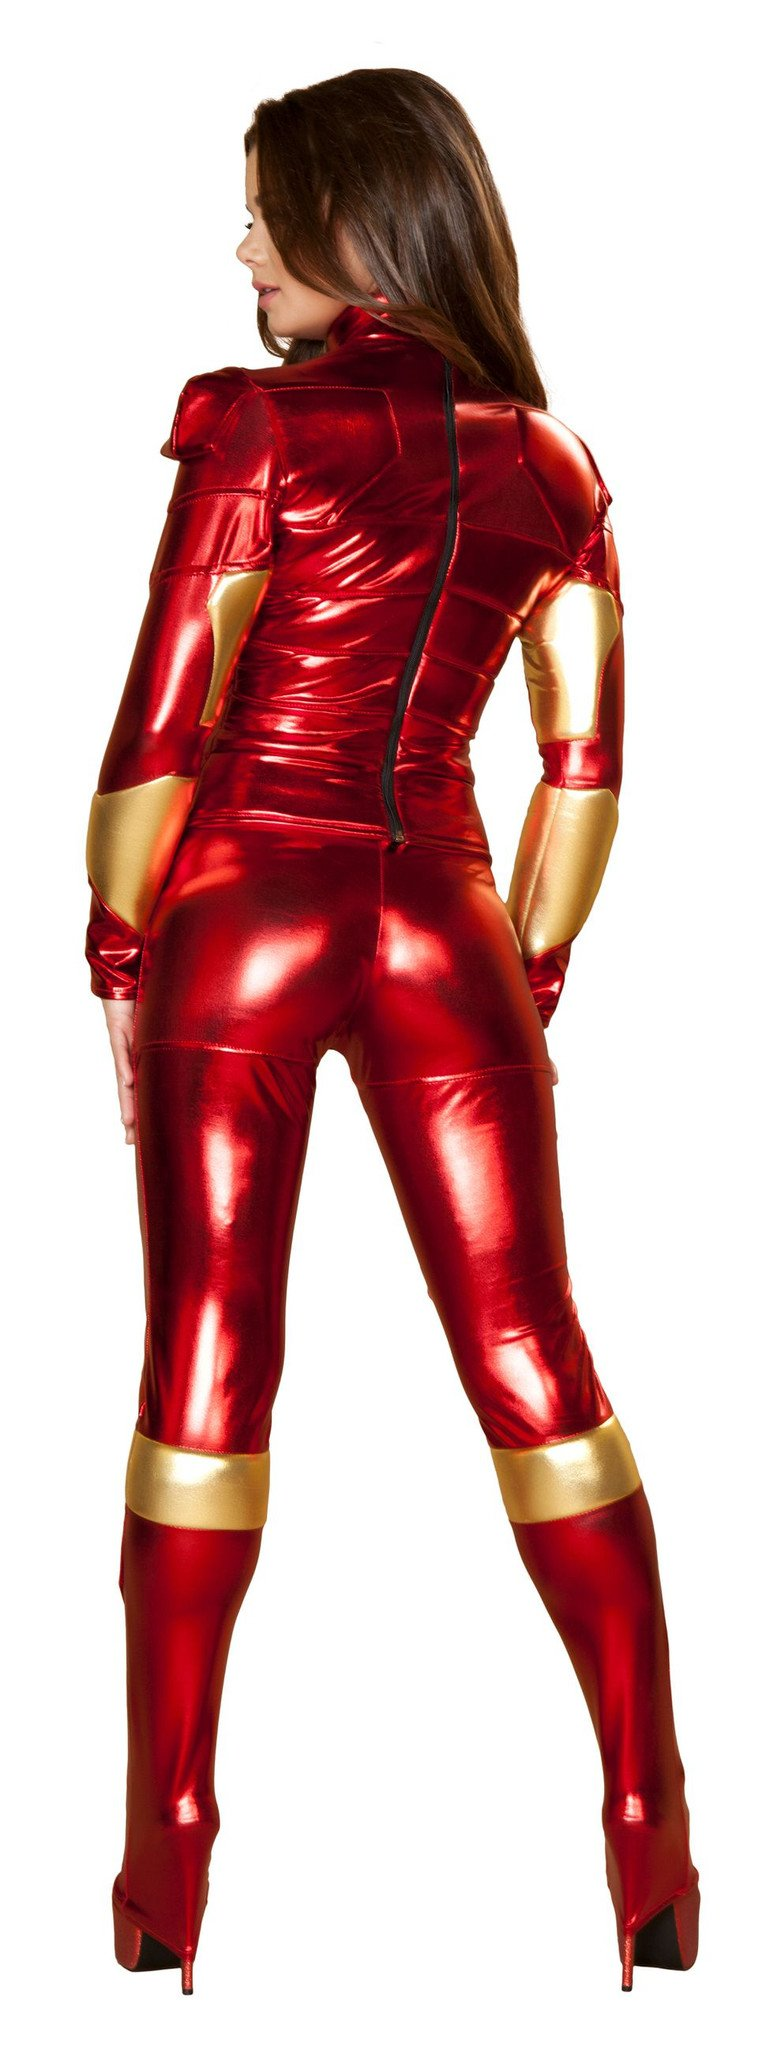 4379 - 2pc Hot Metal Mistress - PlaythingsMiami